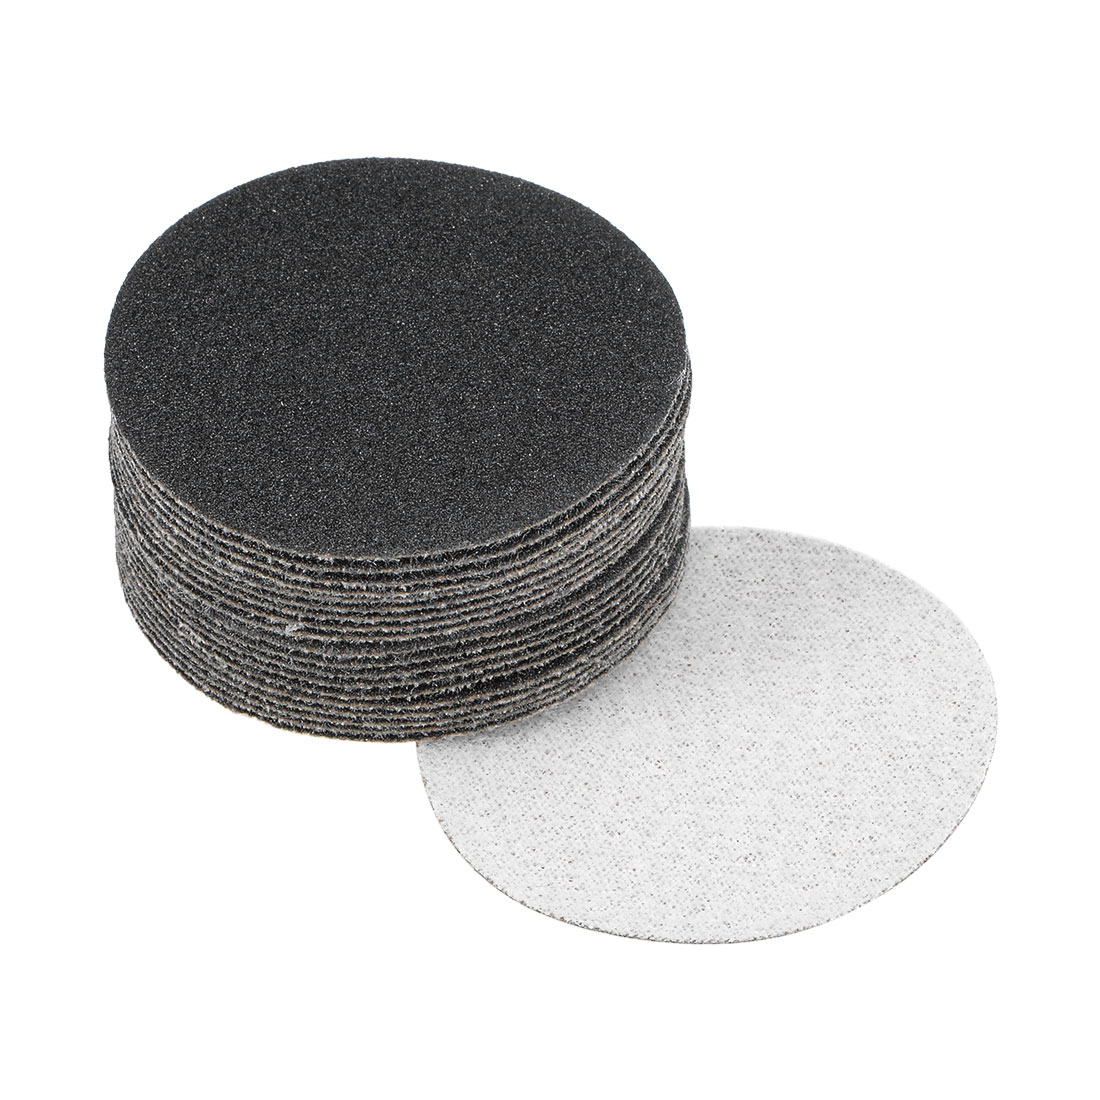 2 inch Wet Dry Discs 120 Grit Hook and Loop Sanding Disc Silicon Carbide 20pcs